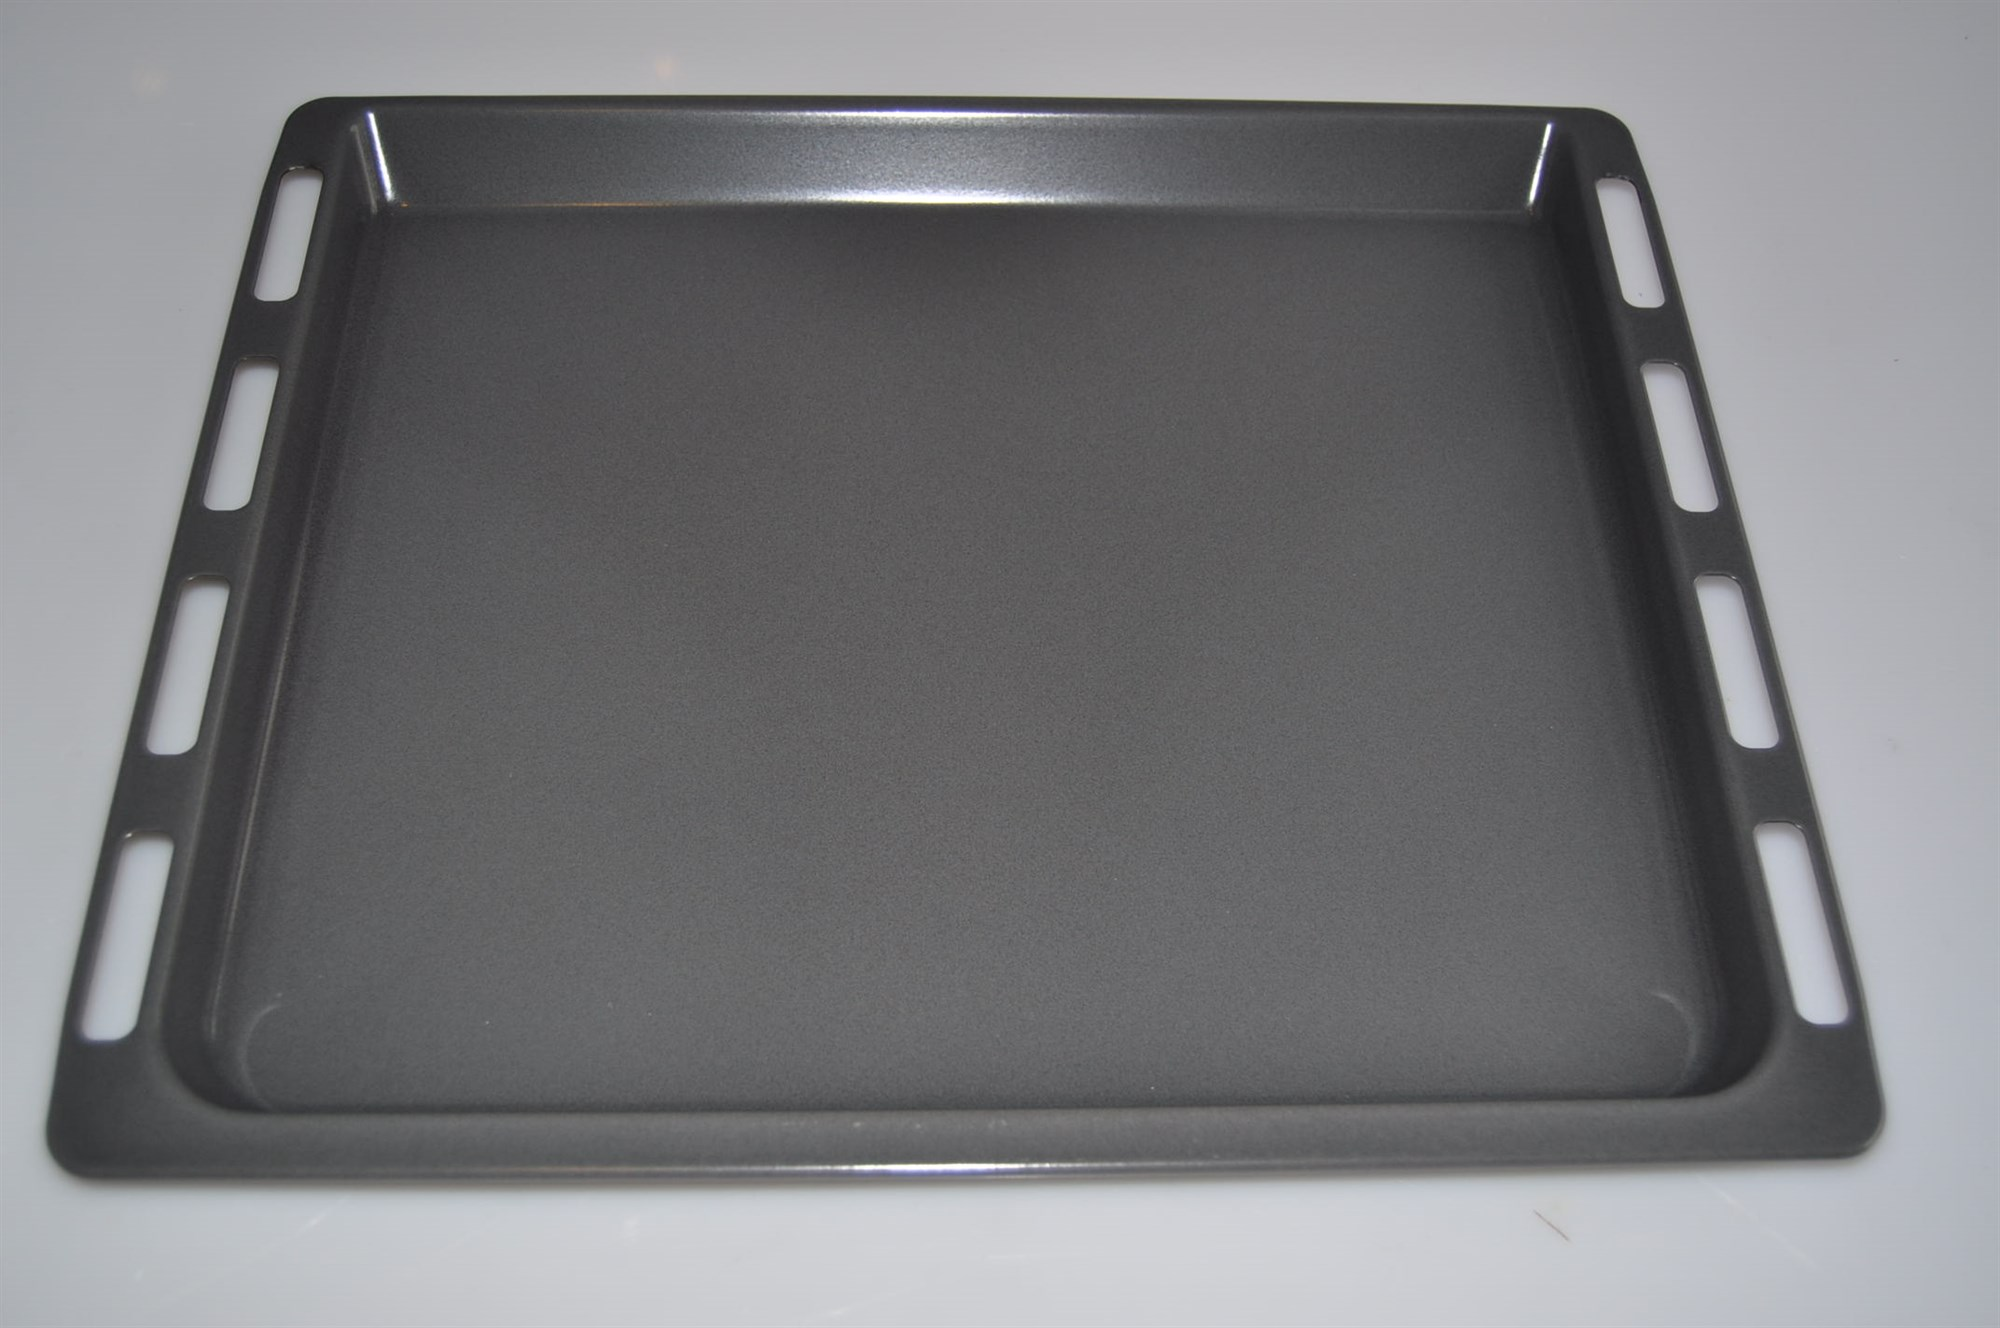 Baking Tray Siemens Cooker Amp Hobs 25 Mm X 465 Mm X 375